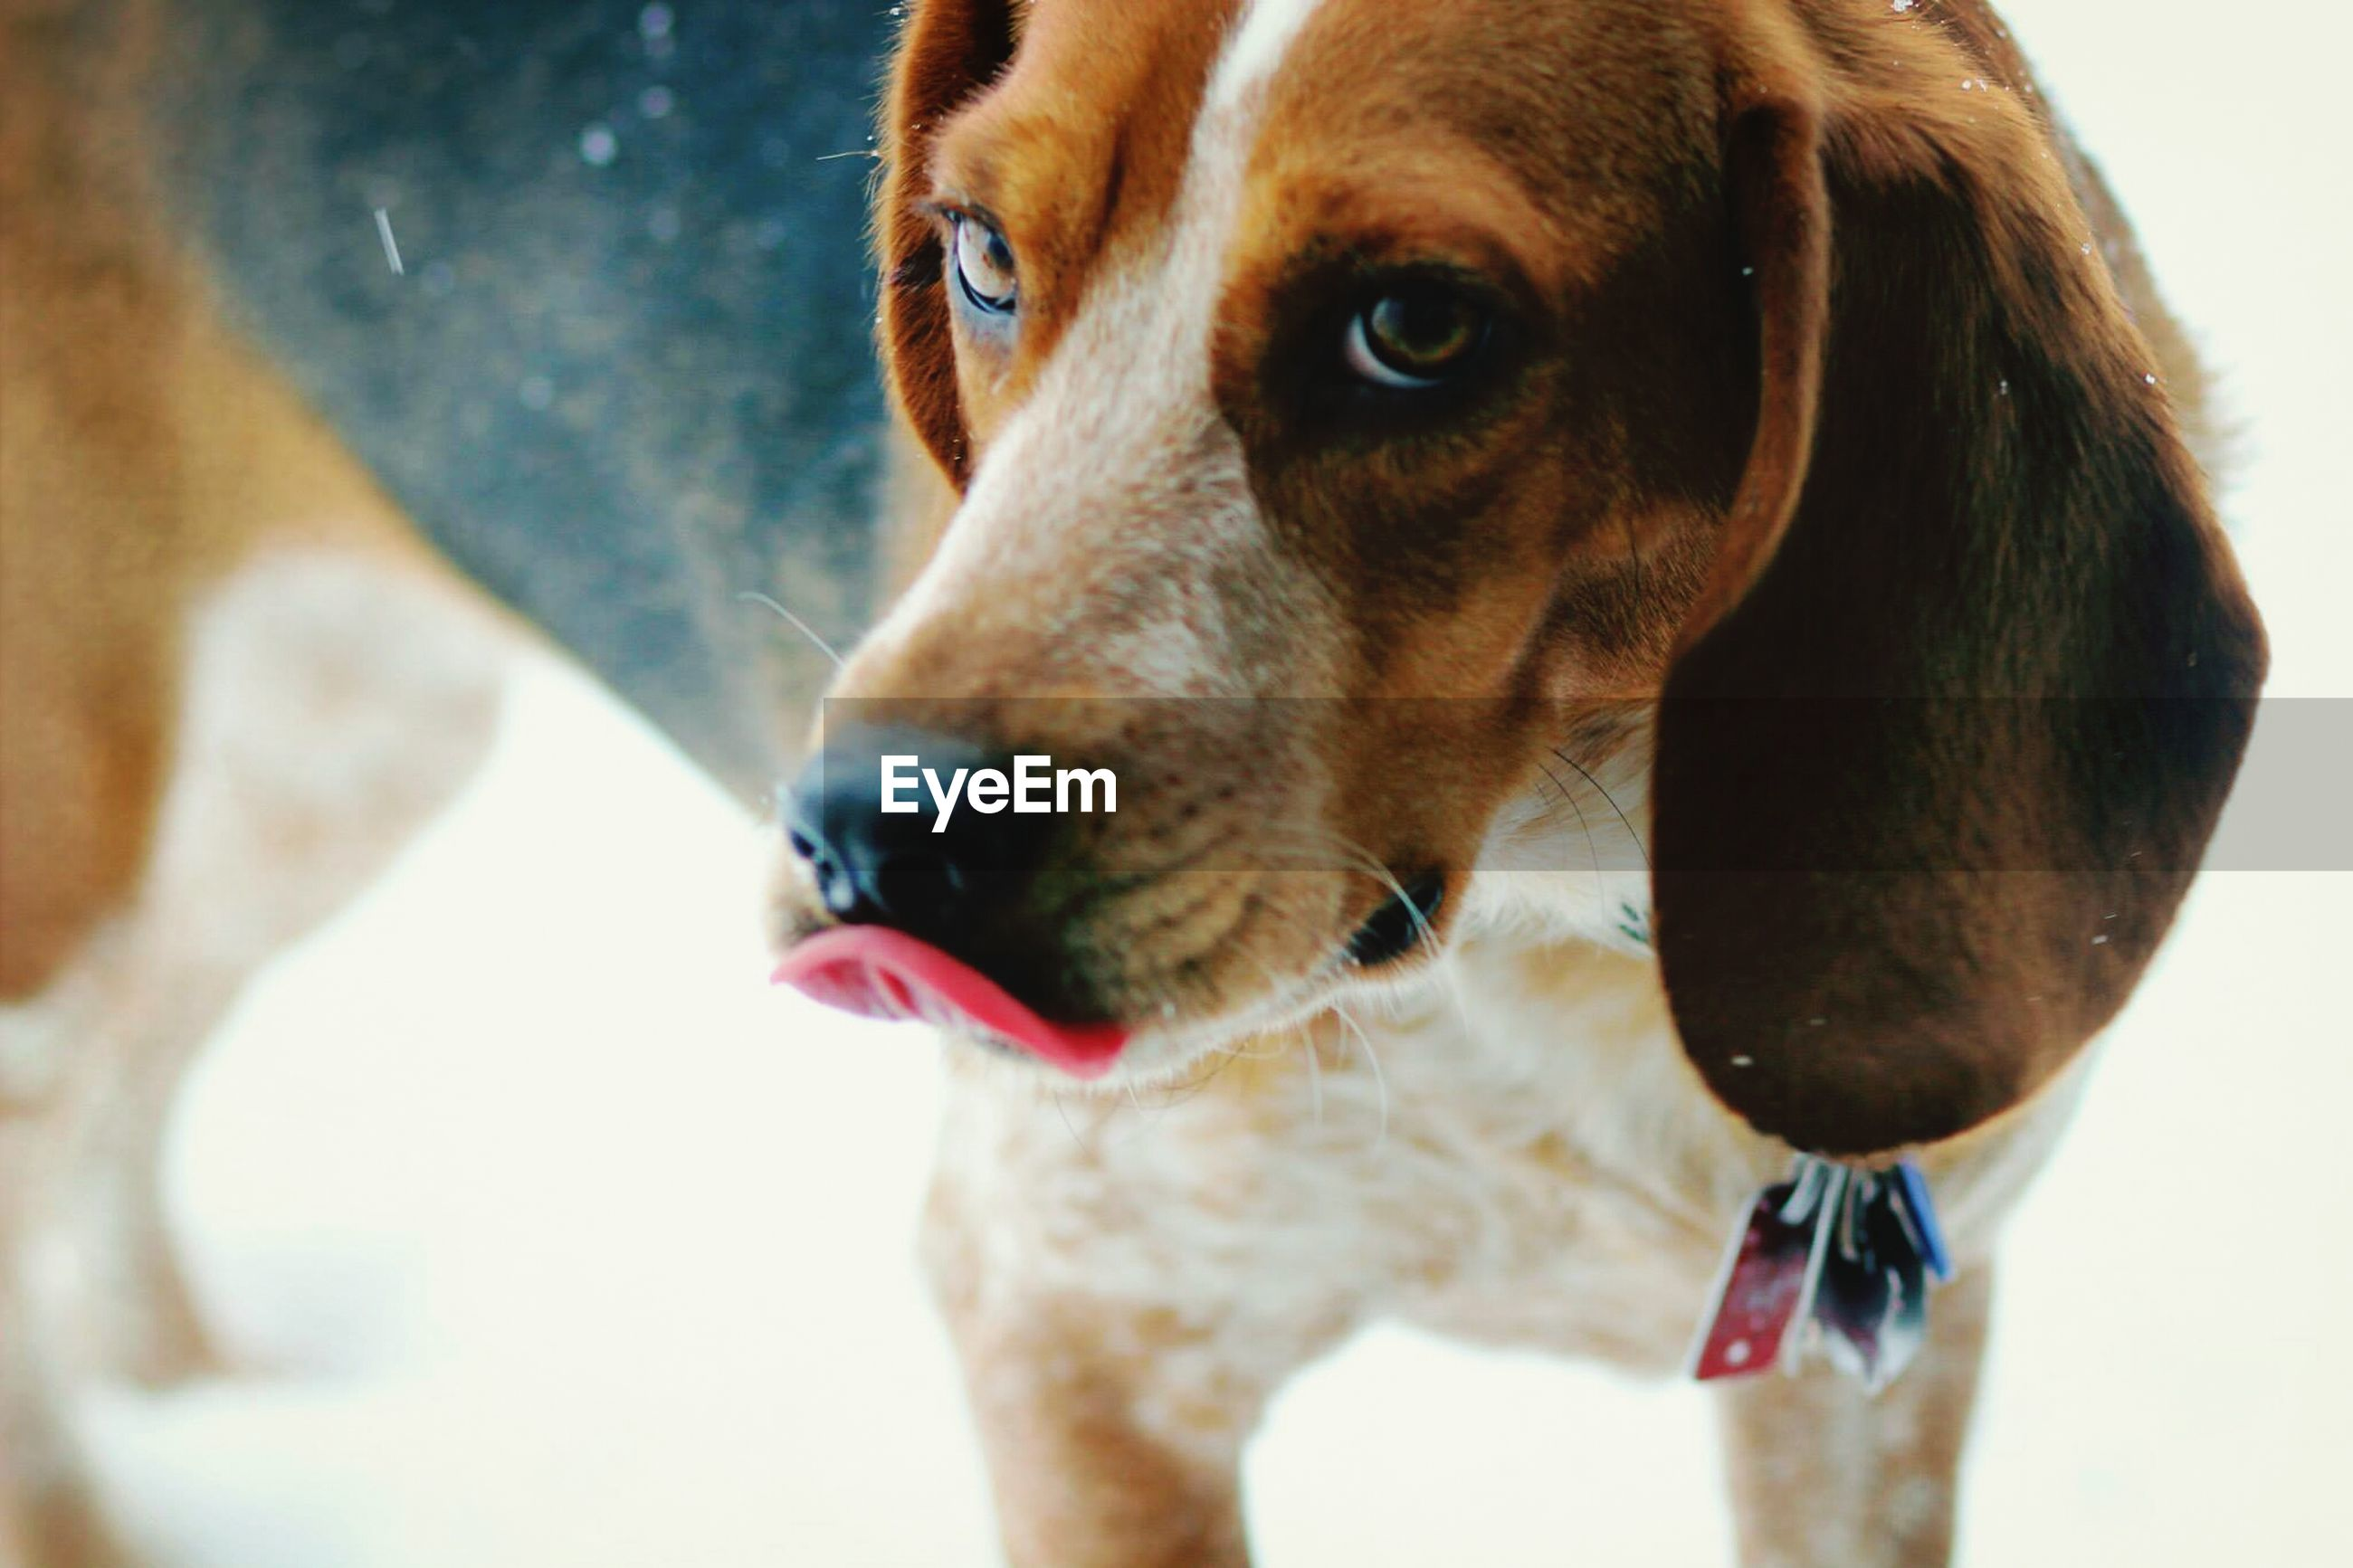 pets, dog, domestic animals, animal themes, one animal, mammal, looking at camera, indoors, portrait, close-up, animal head, pet collar, focus on foreground, sticking out tongue, cute, red, mouth open, no people, brown